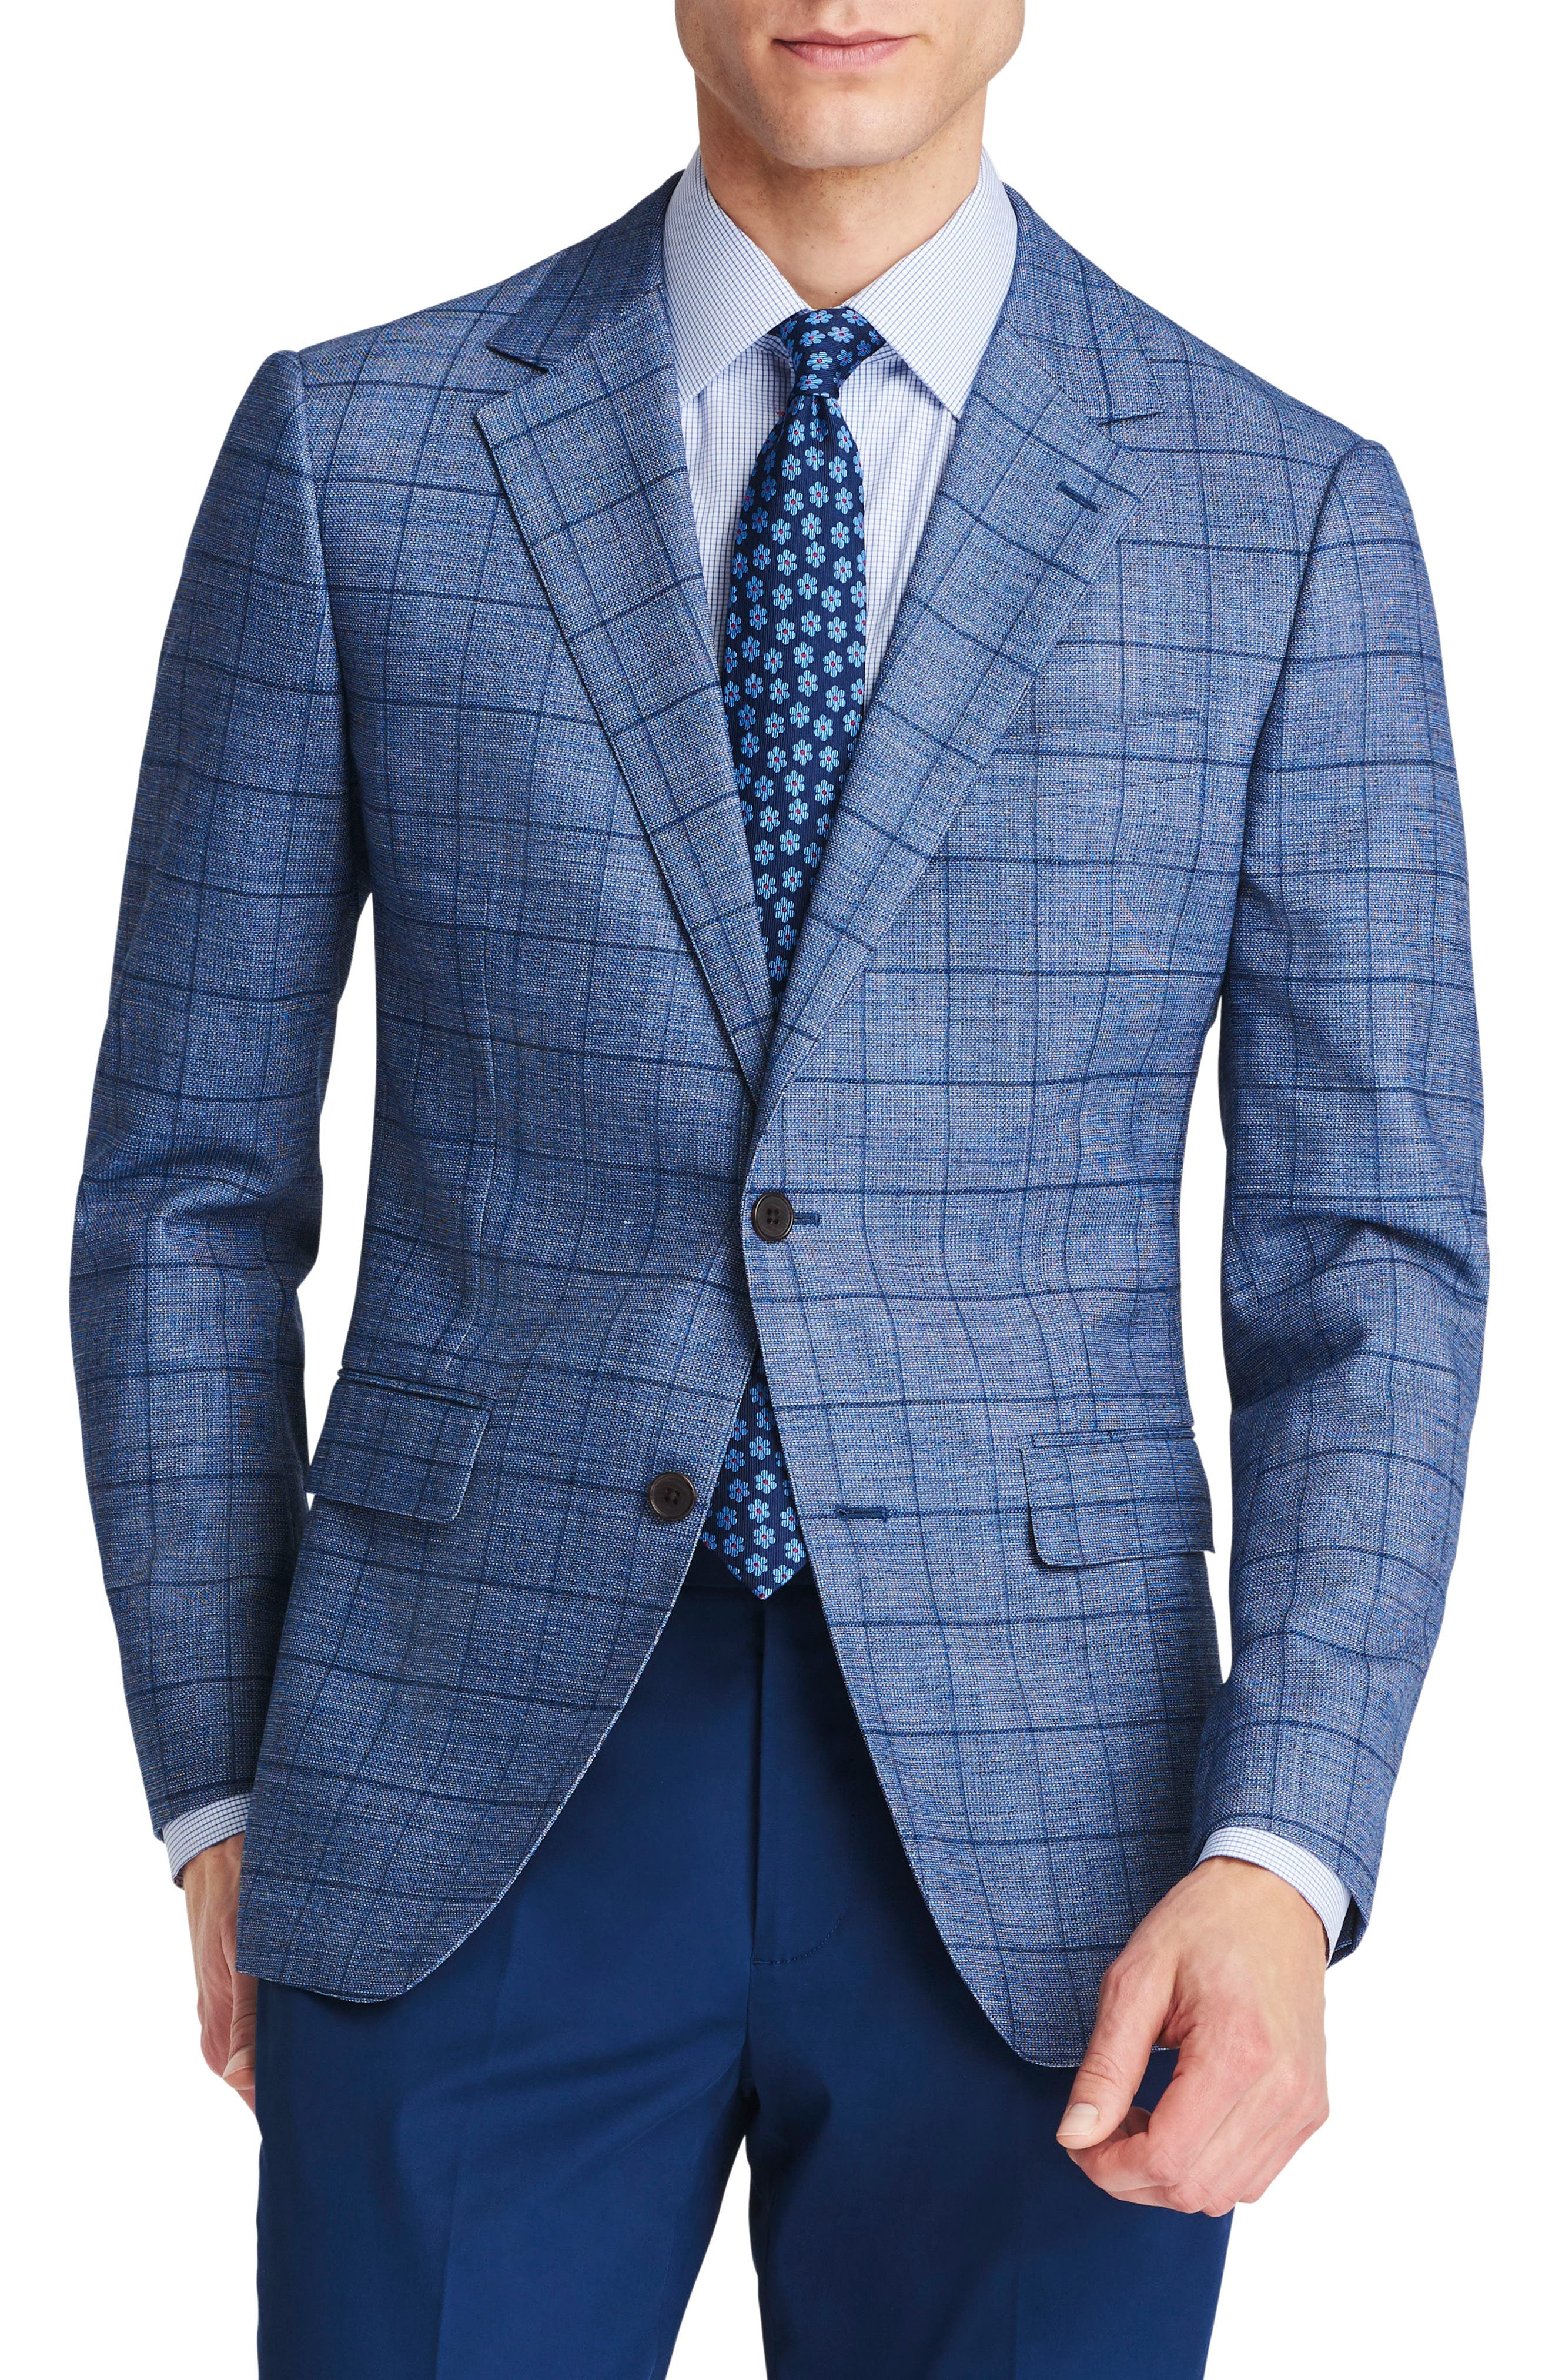 Jetsetter Slim Fit Stretch Wool Blazer,                             Main thumbnail 1, color,